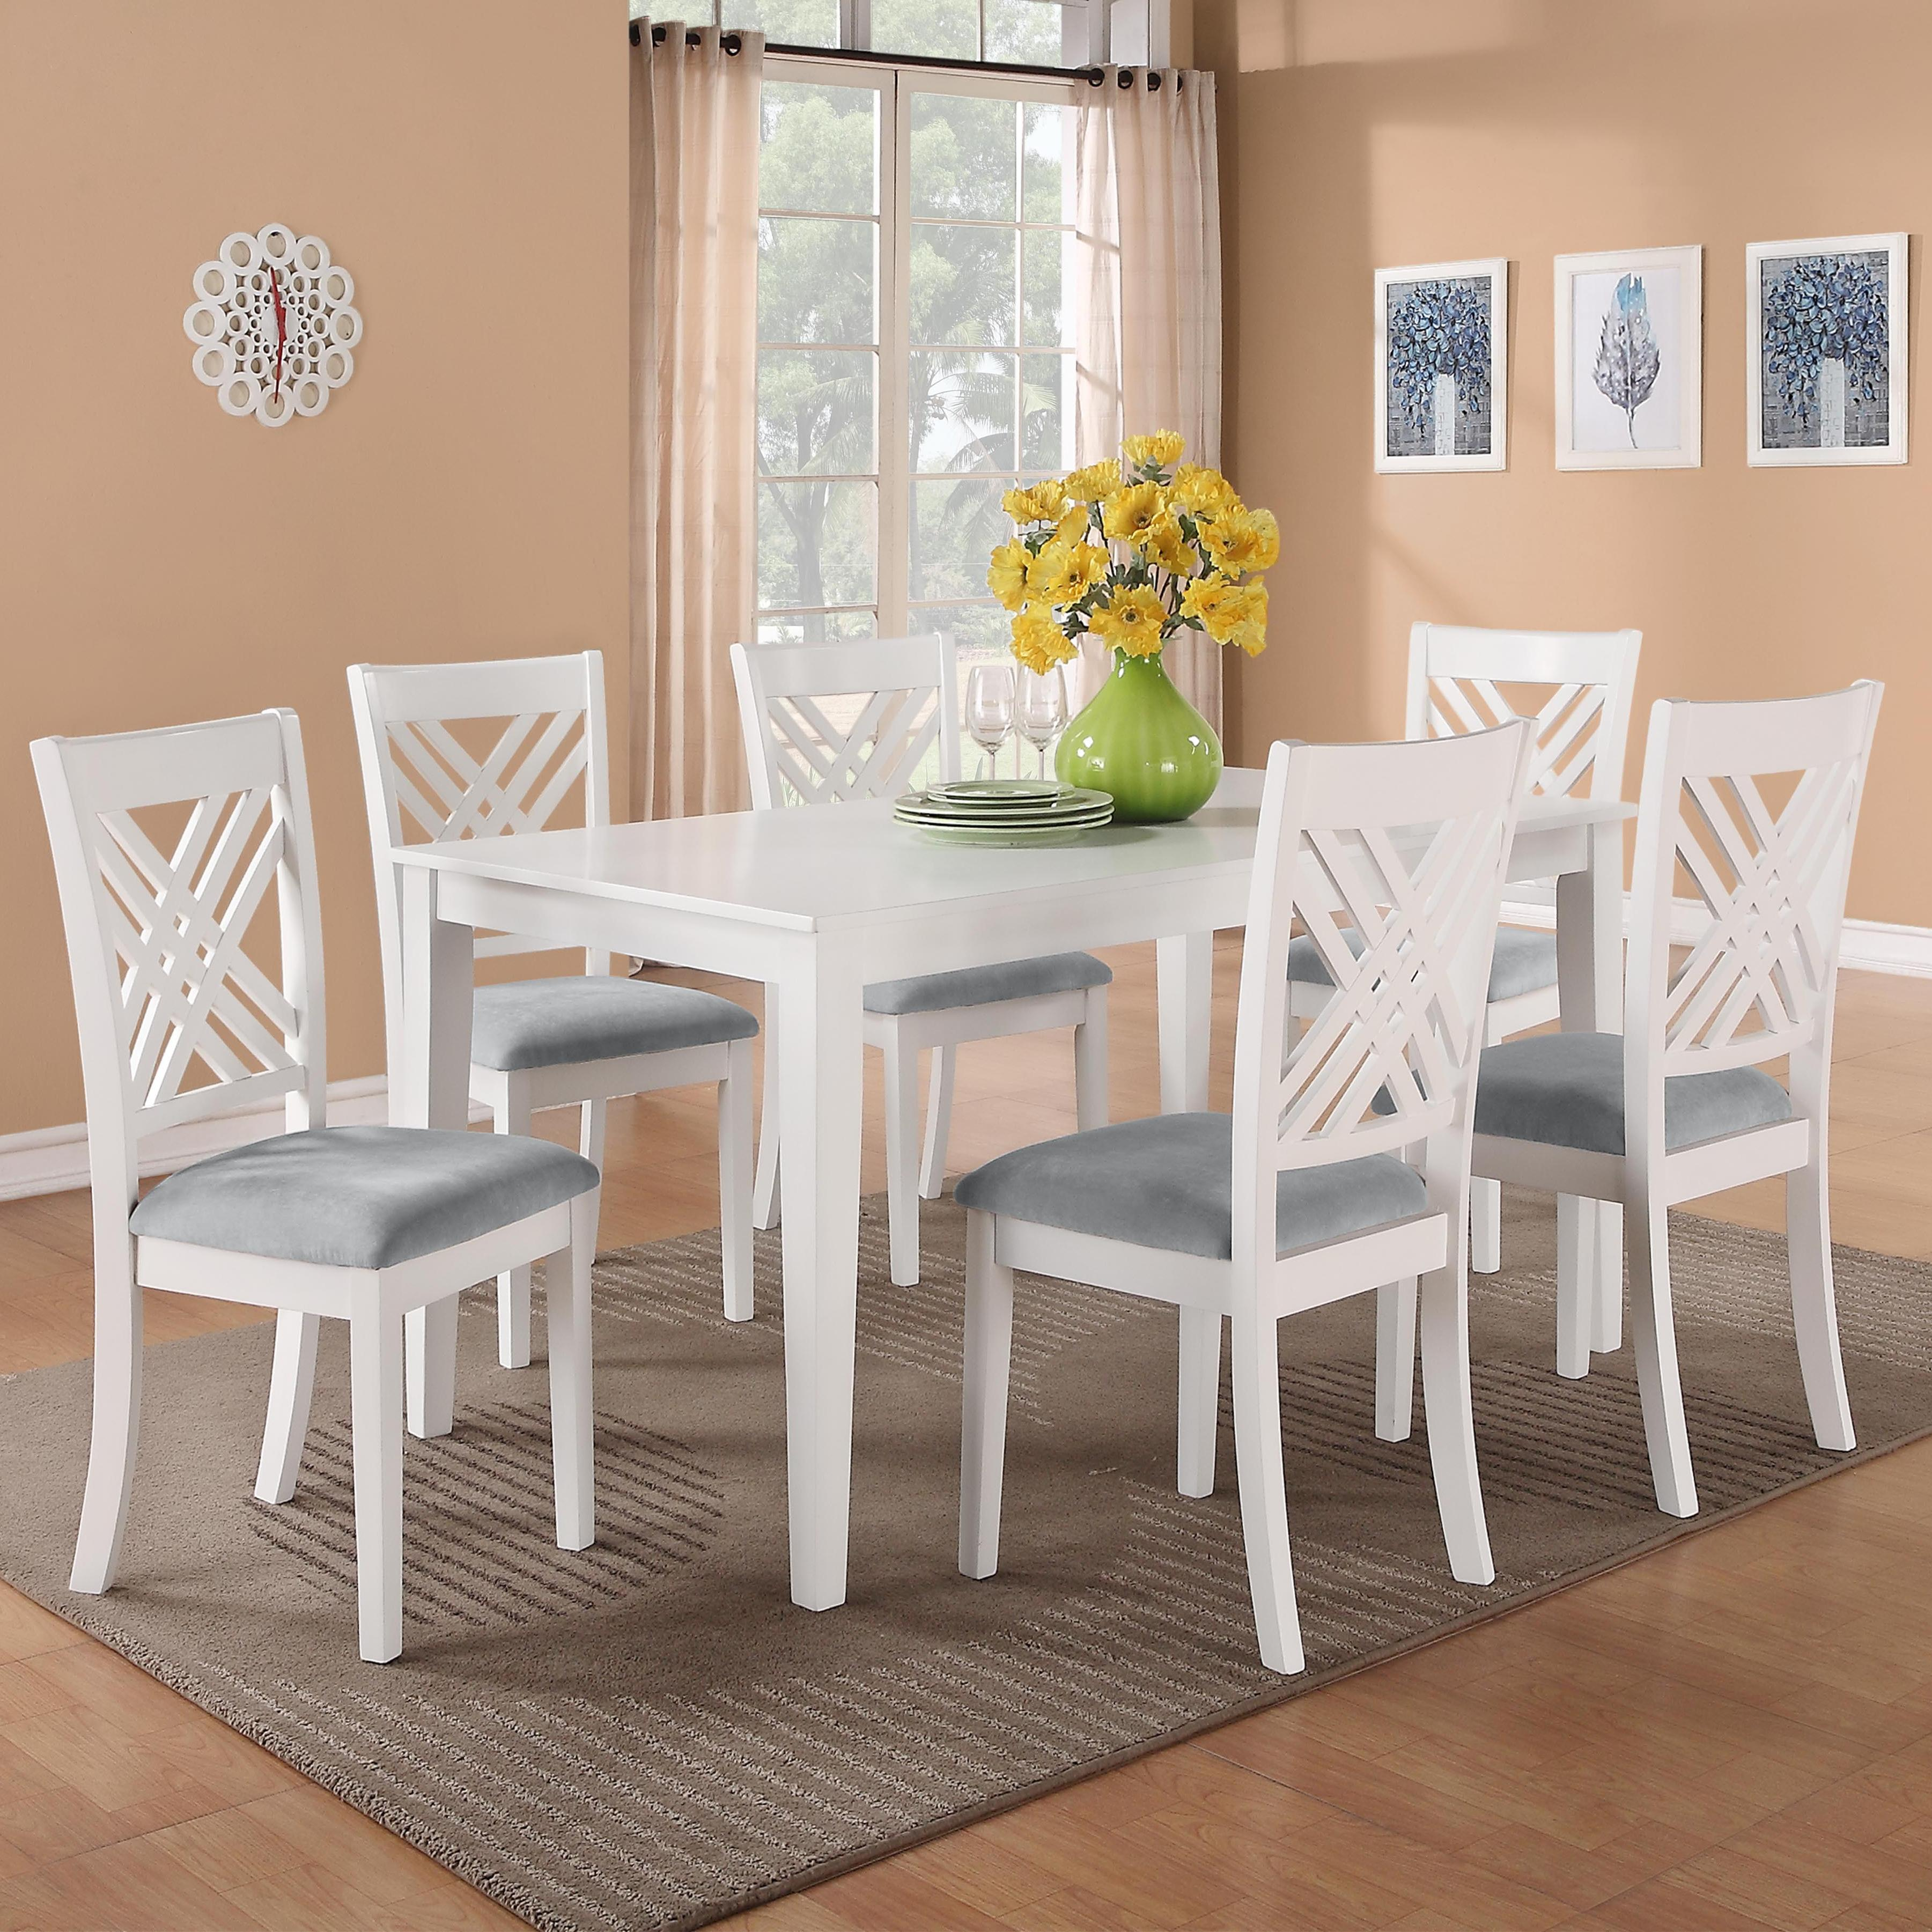 Standard Furniture Brooklyn 7 Piece Table & Chair Set - Item Number: 18282